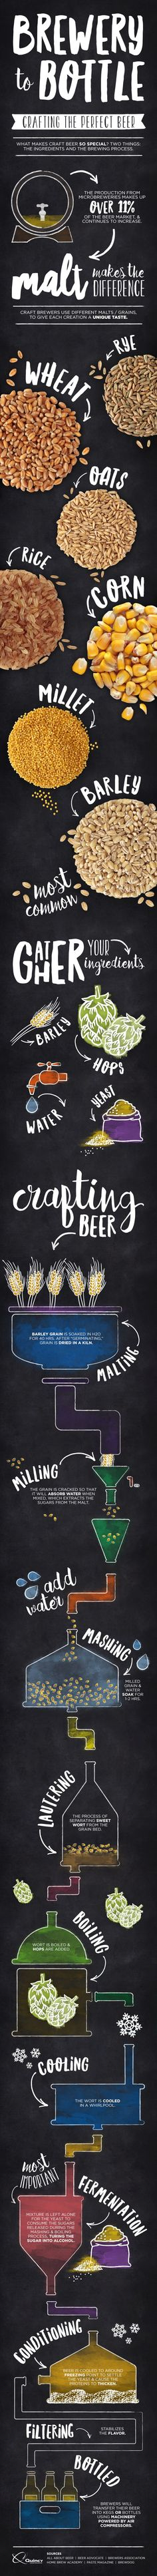 Brewery to Bottle Infographic on how to brew beer - homebrewing guide with ingredients and processes explained!